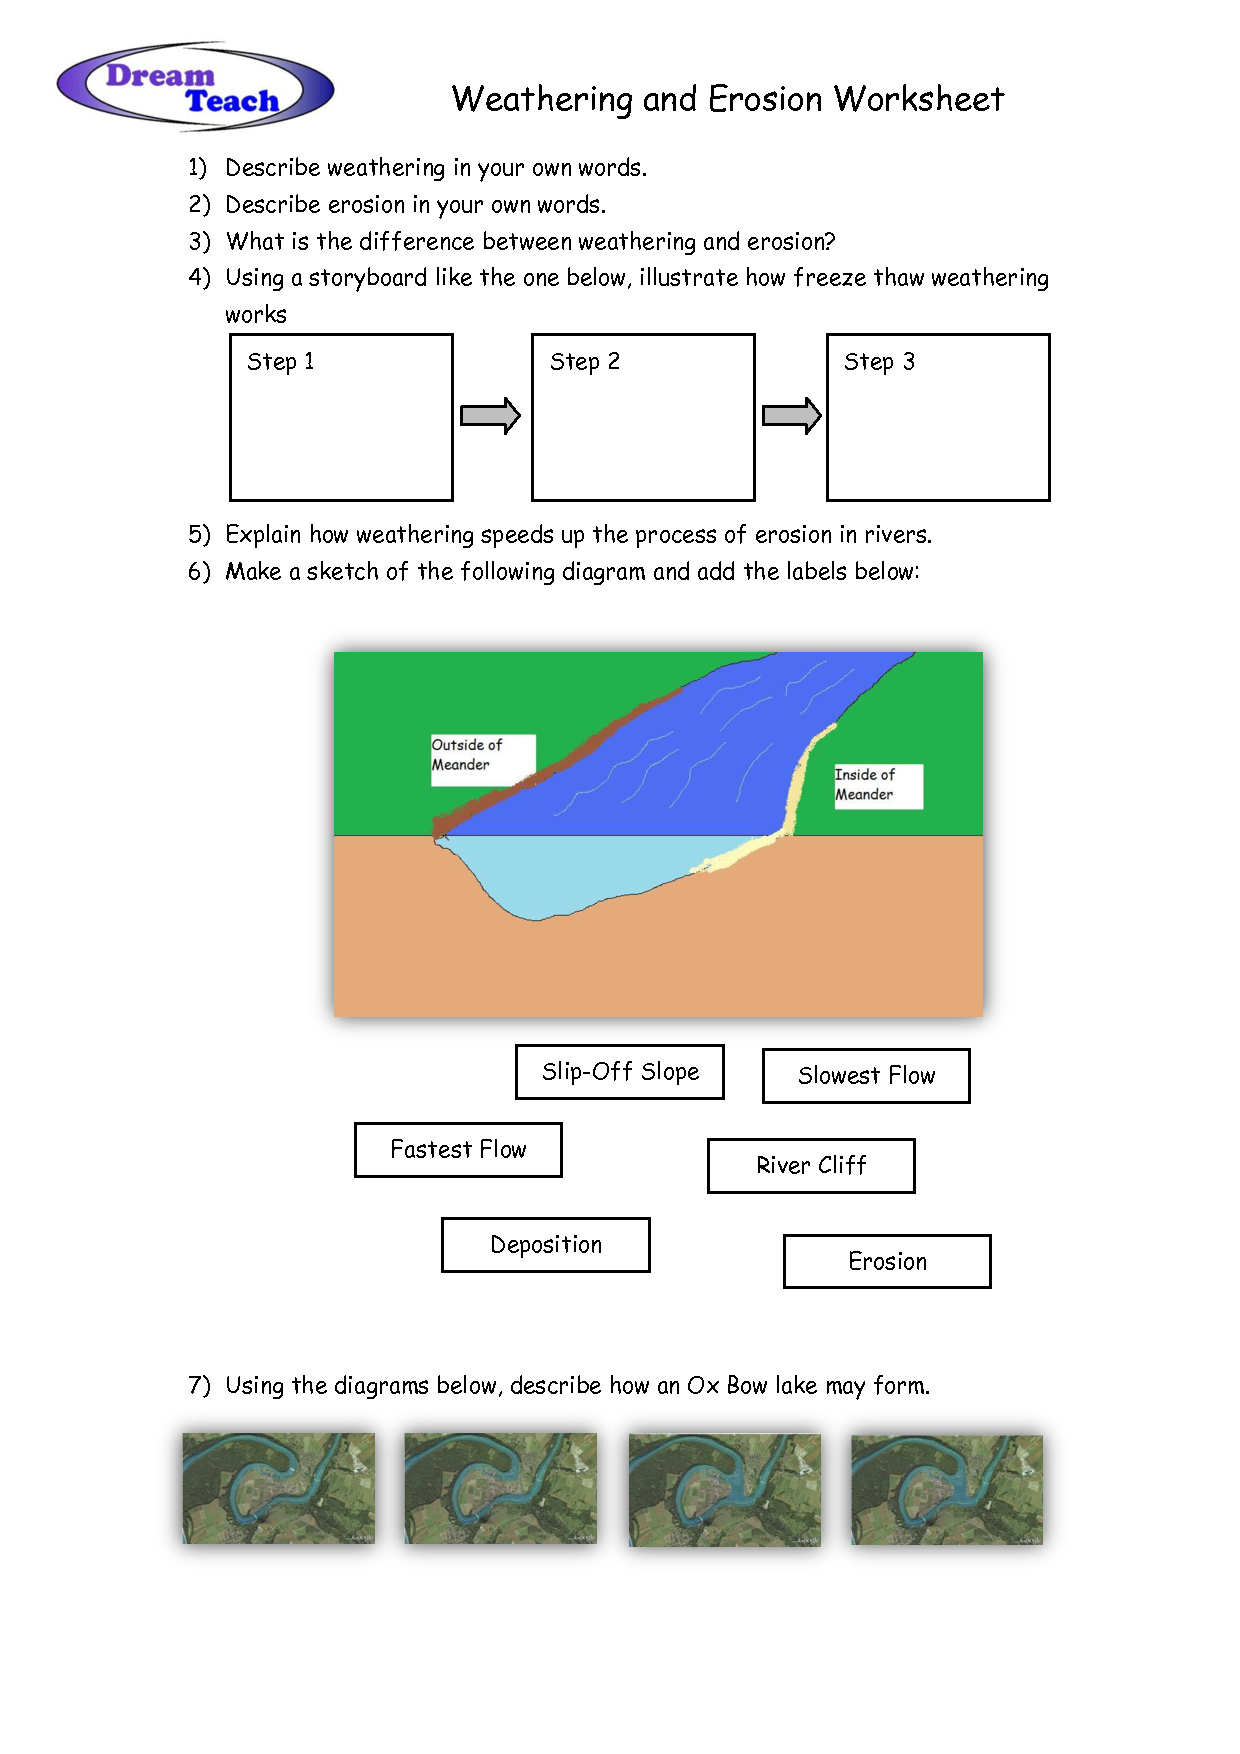 Weathering And Erosion Worksheet | school | Pinterest ...